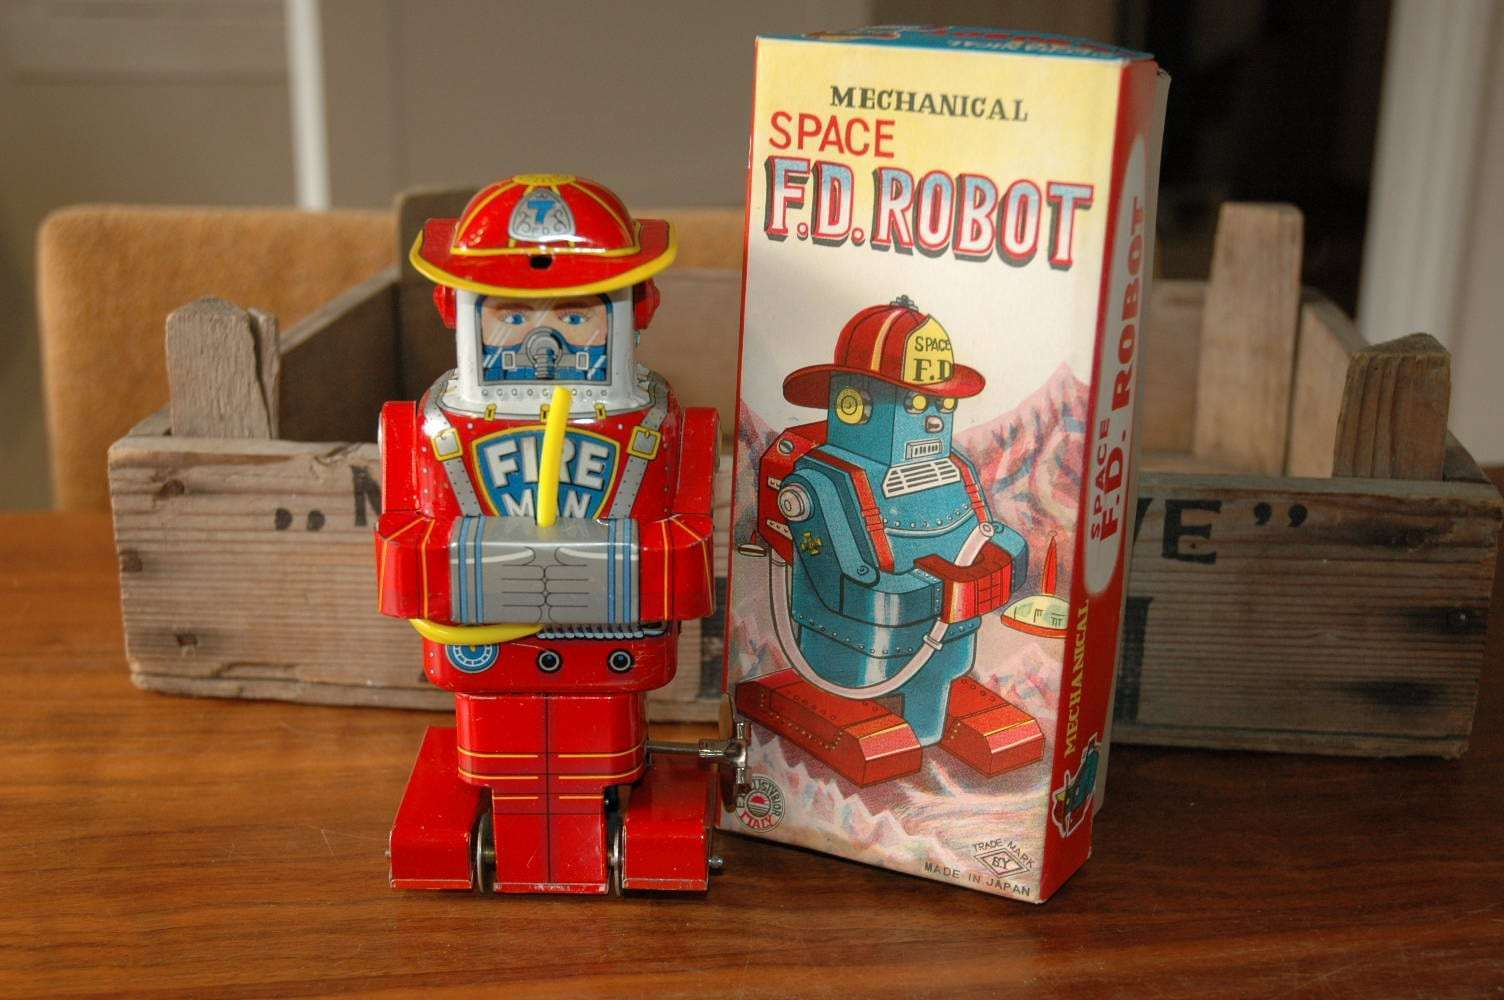 SY - Space F.D. Robot